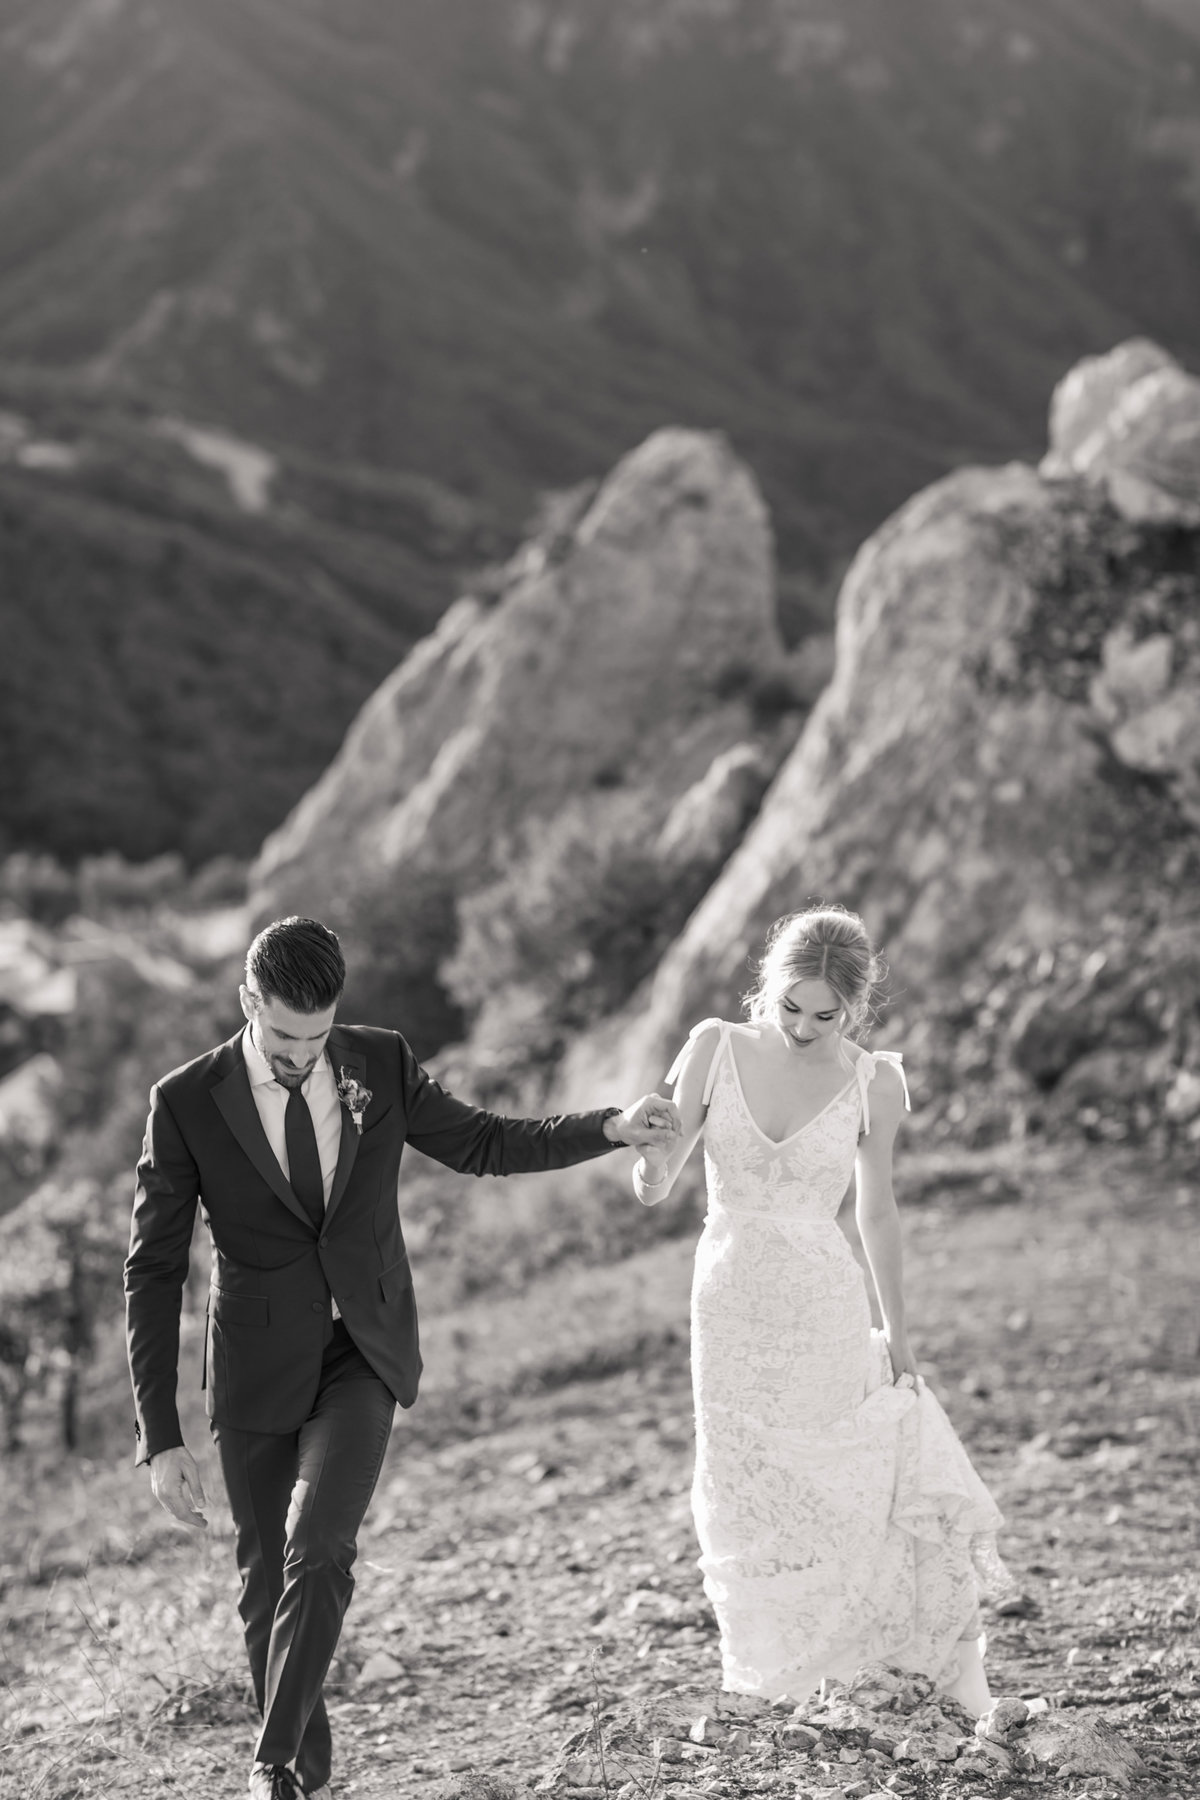 Malibu_Rocky_Oaks_Wedding_Inbal_Dror_Valorie_Darling_Photography - 127 of 160